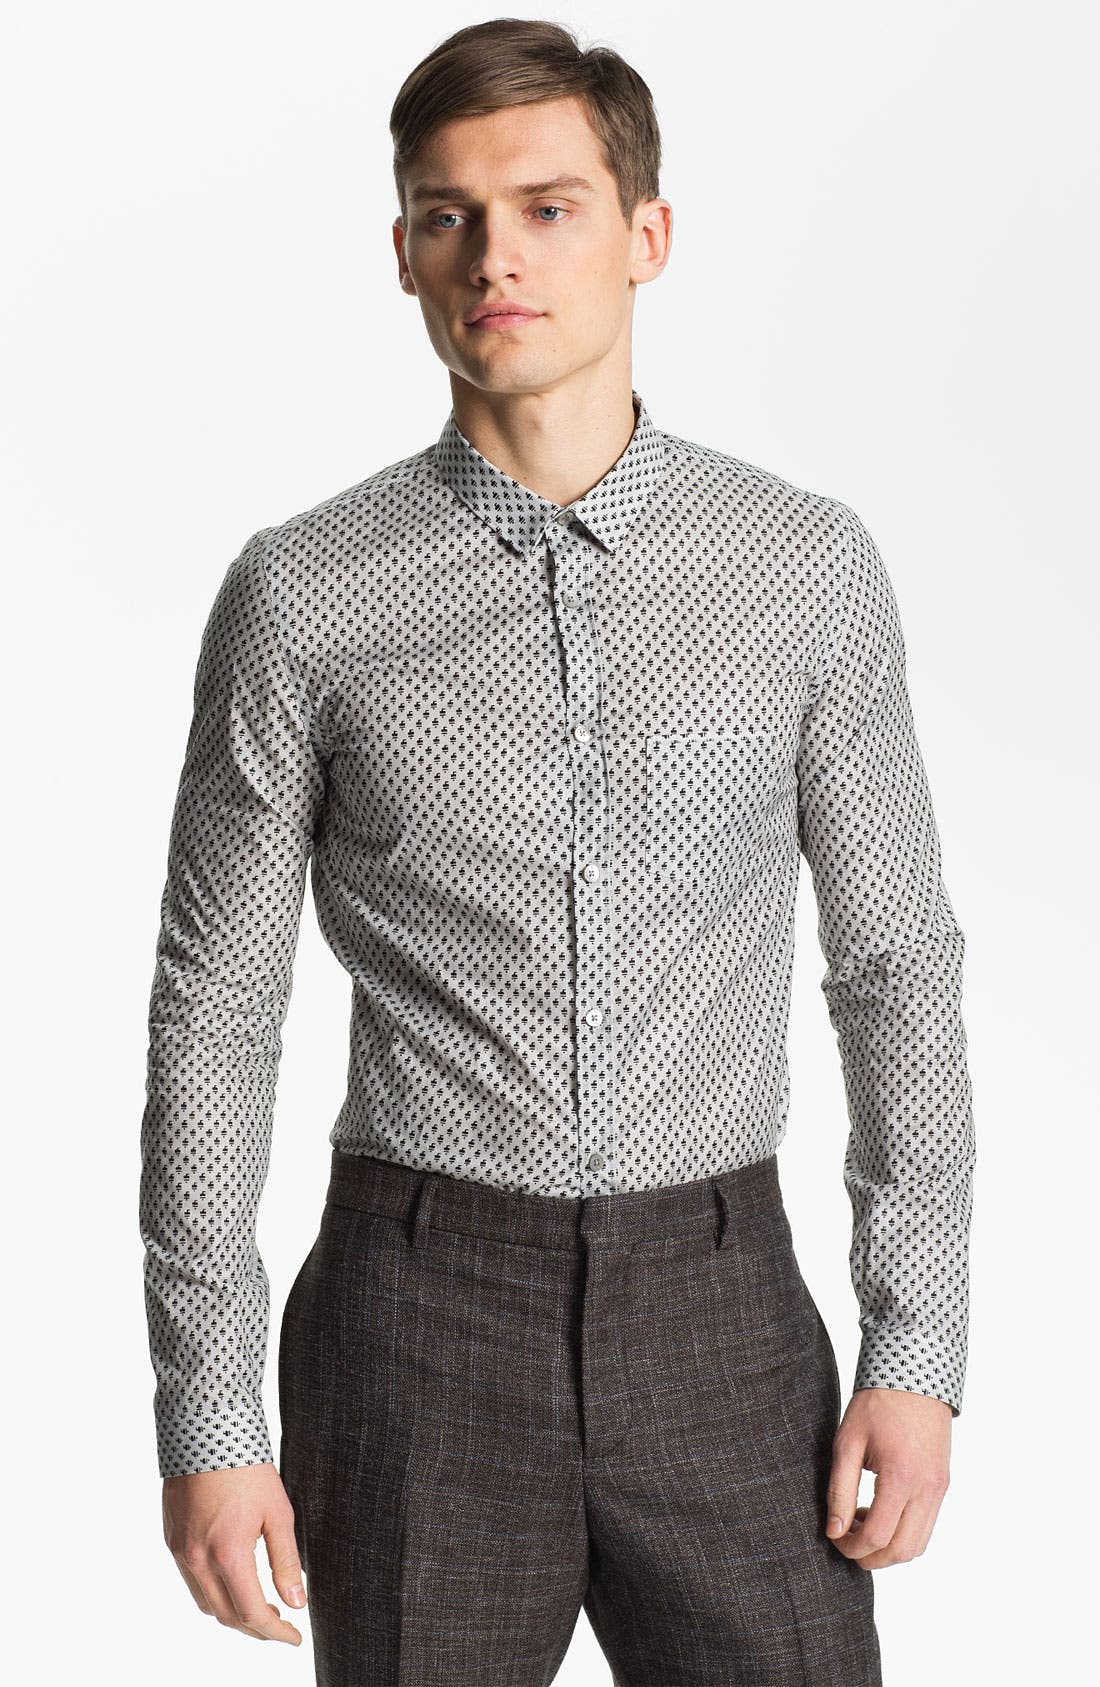 Alternate Image 1 Selected - Burberry Prorsum Geometric Fawn Print Shirt